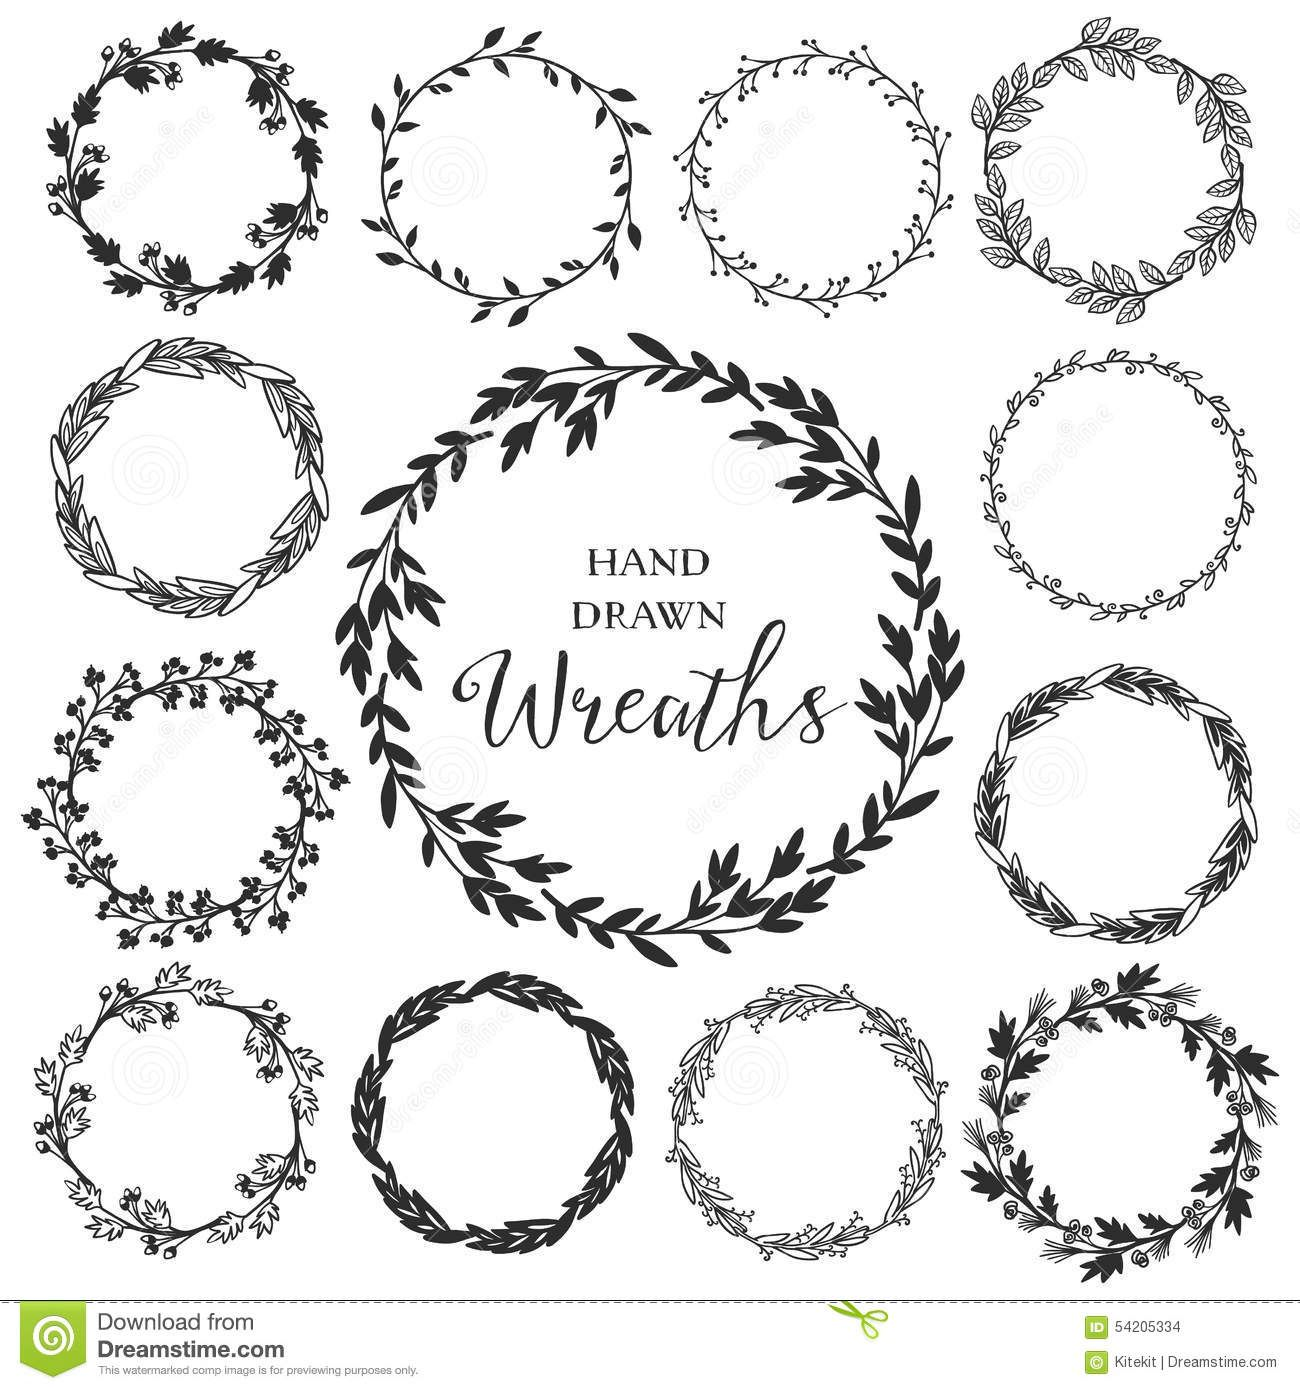 Rustic flower clipart black and white picture royalty free library Image result for rustic floral circle black and white ... picture royalty free library